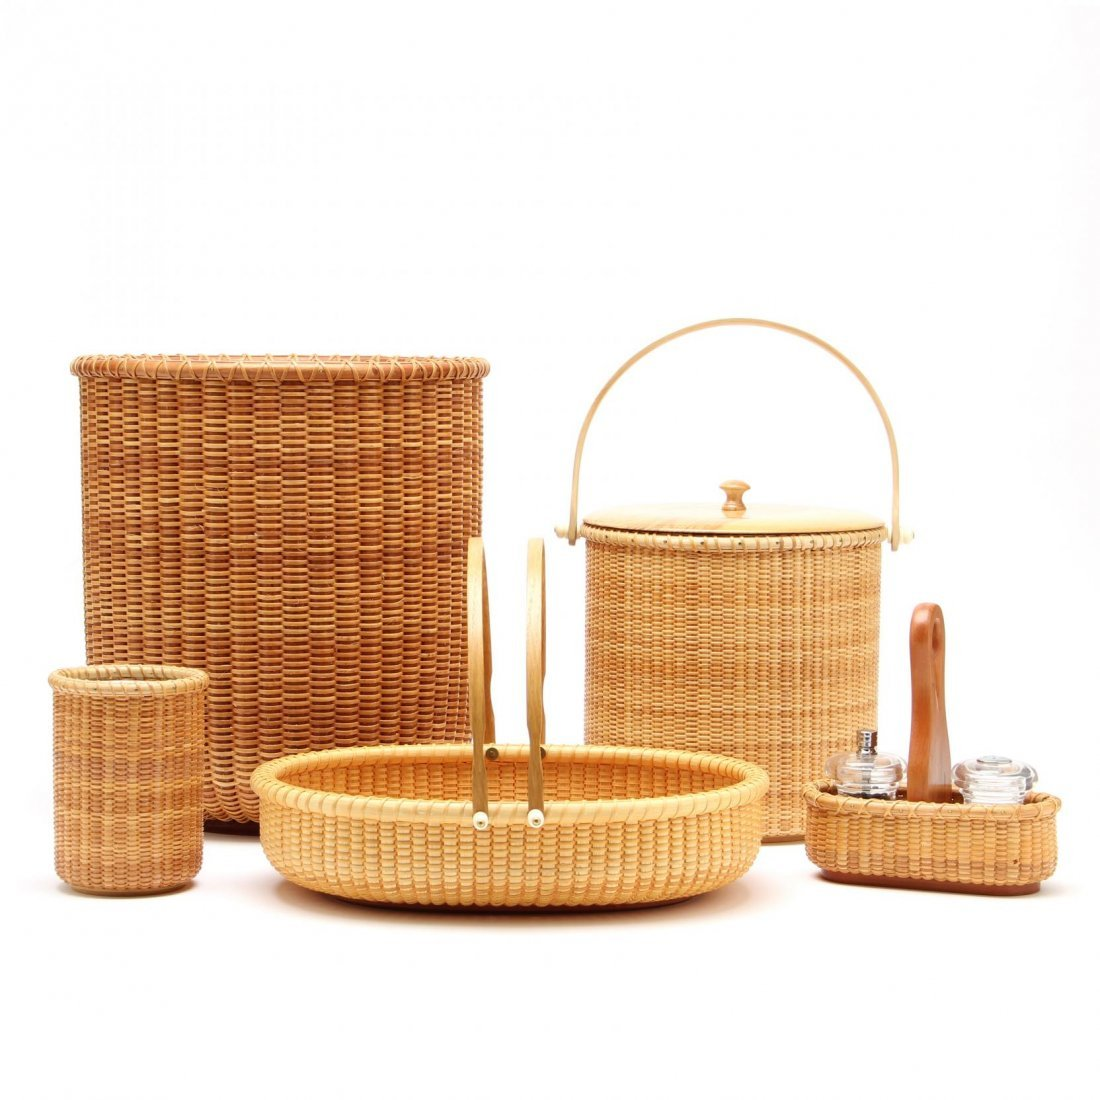 A Group of Nantucket Woven Accessories